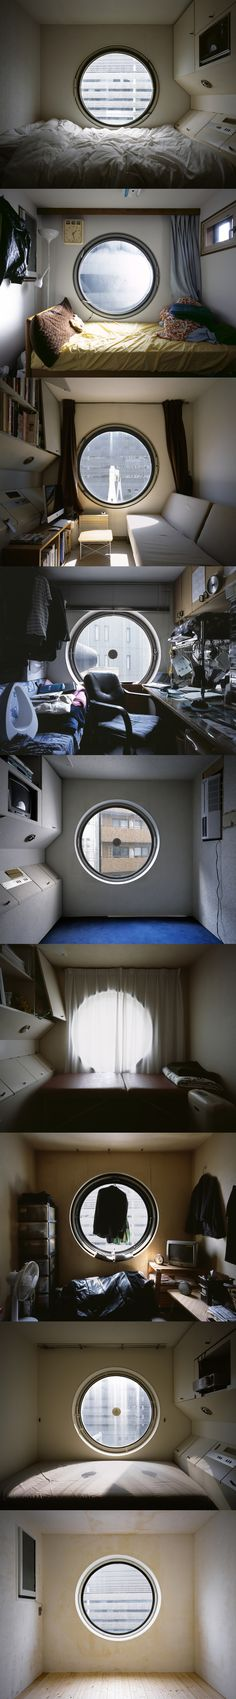 small spaces are becoming of a mega populated city. living quarters have stopped signalling certain messages regarding your lifestyle, so no one really cares you are cramped in tiny tiny rooms.